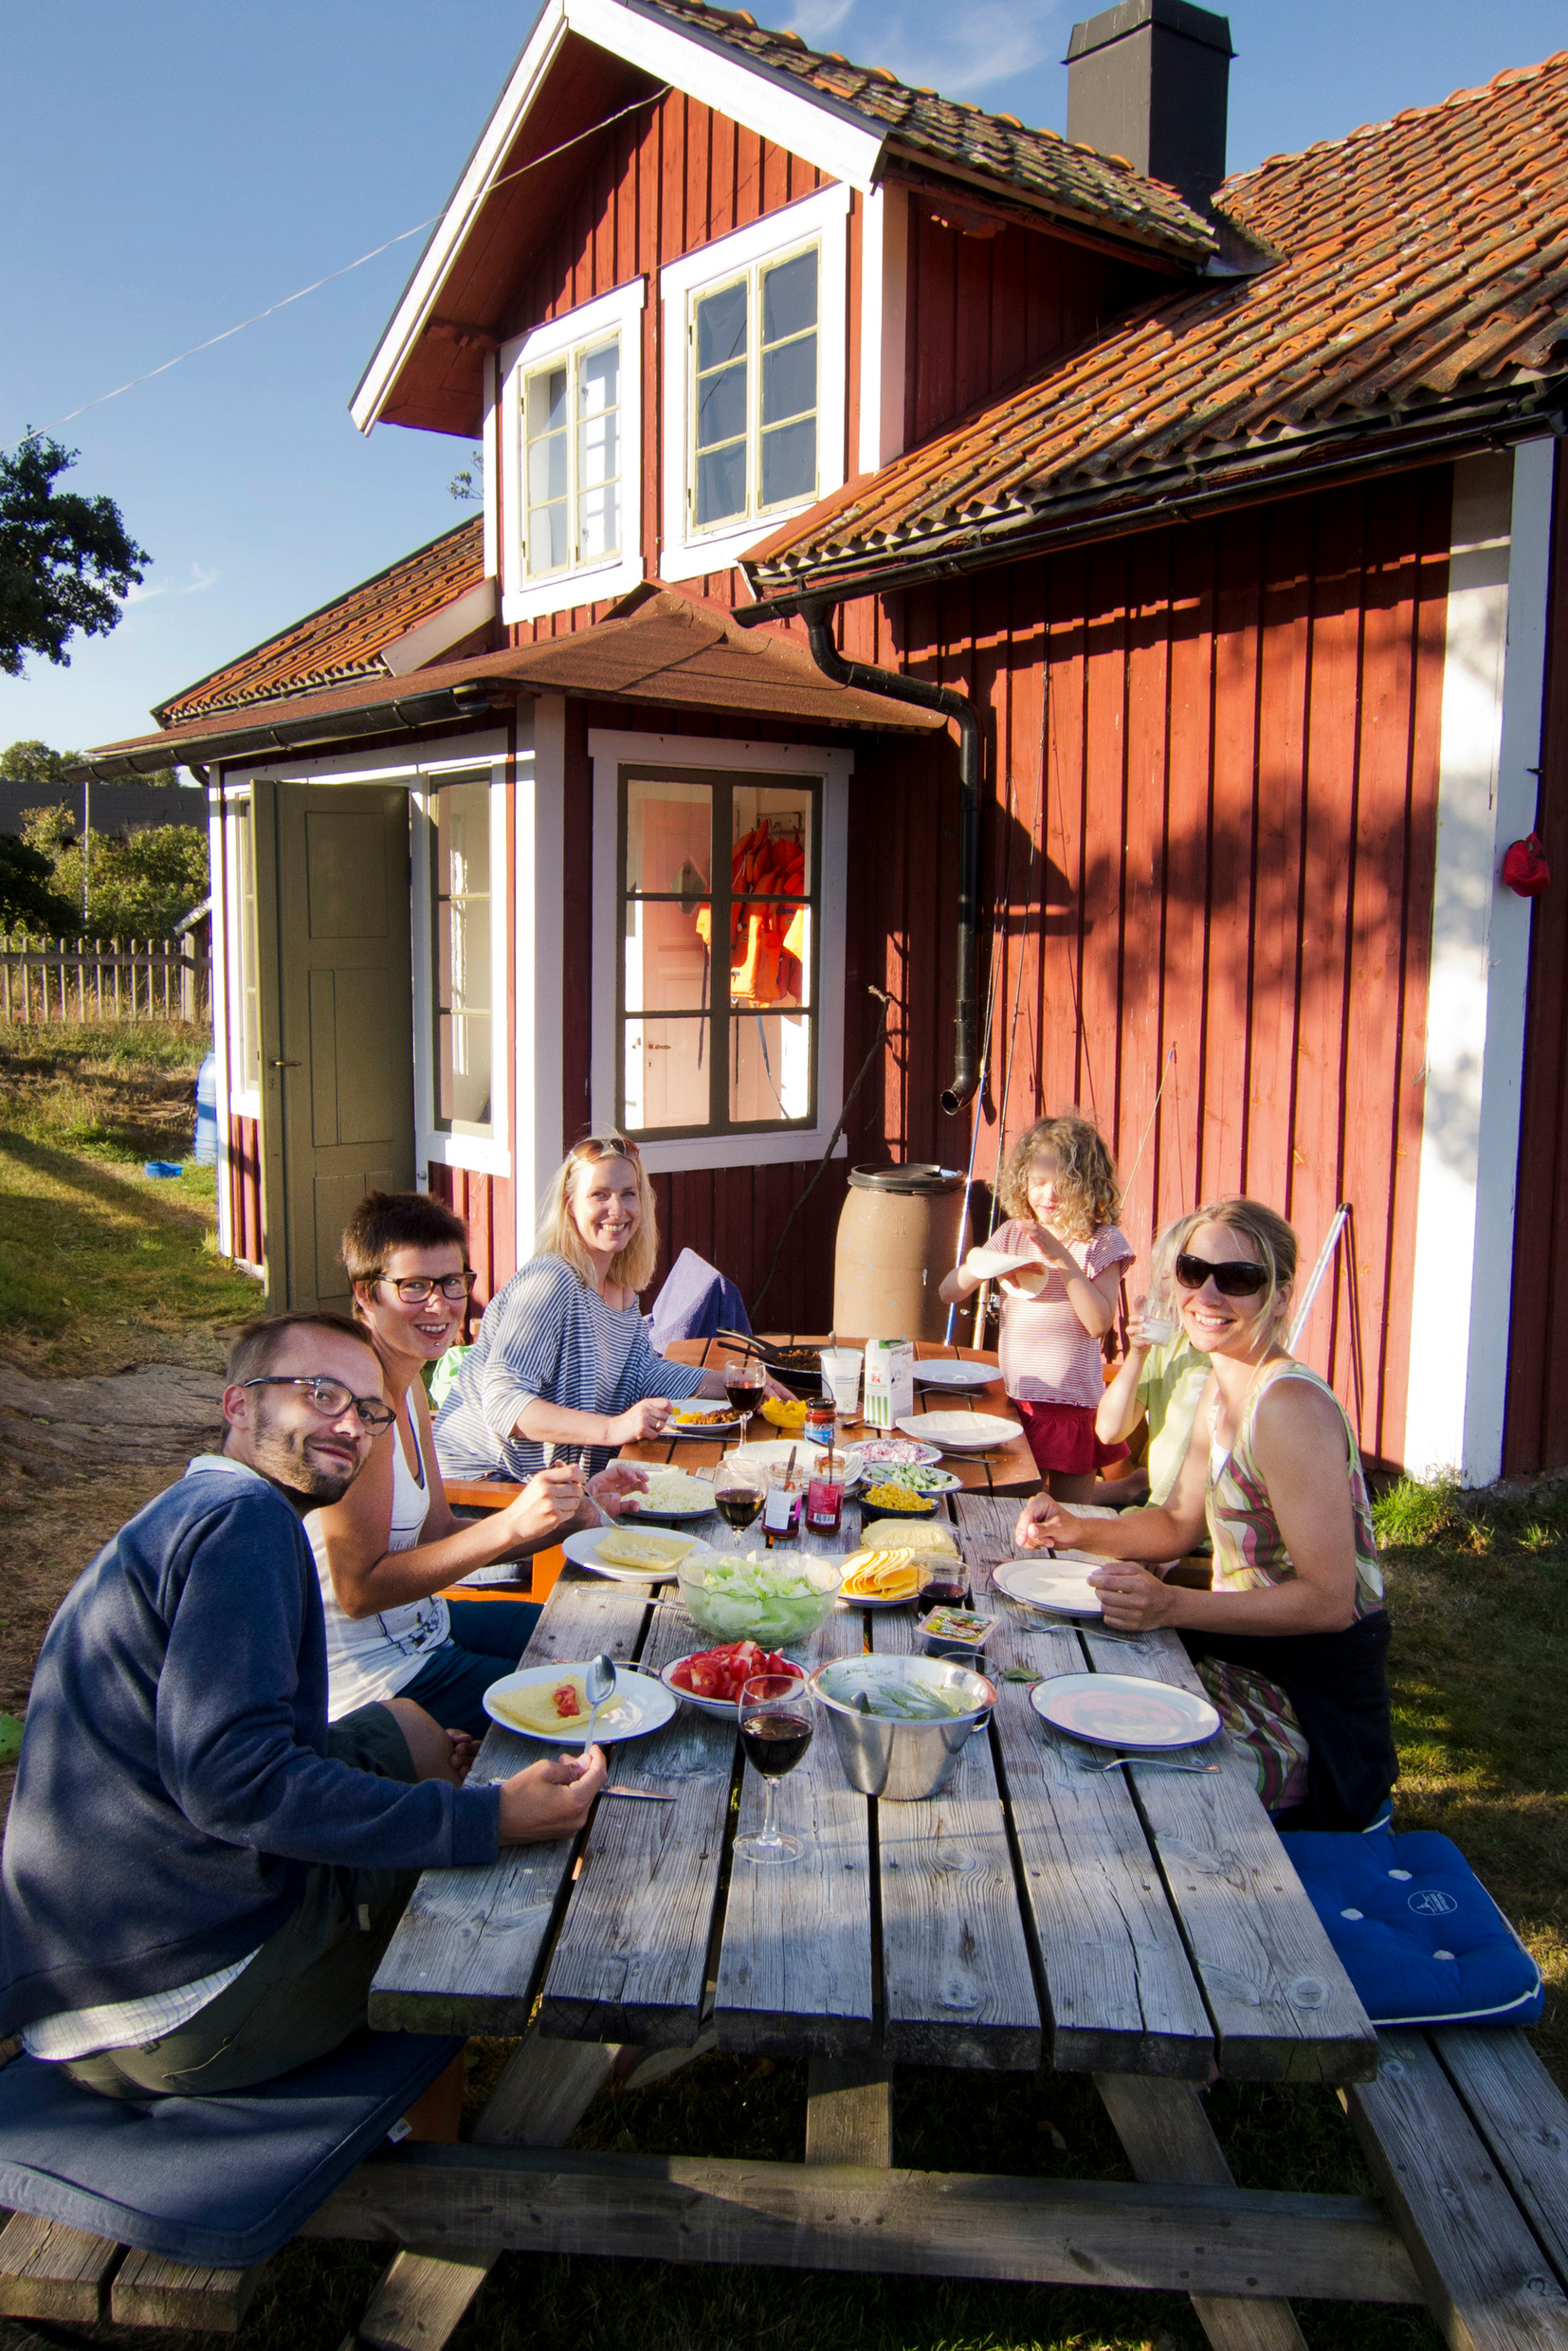 melker_dahlstrand-outdoor_meal-1687